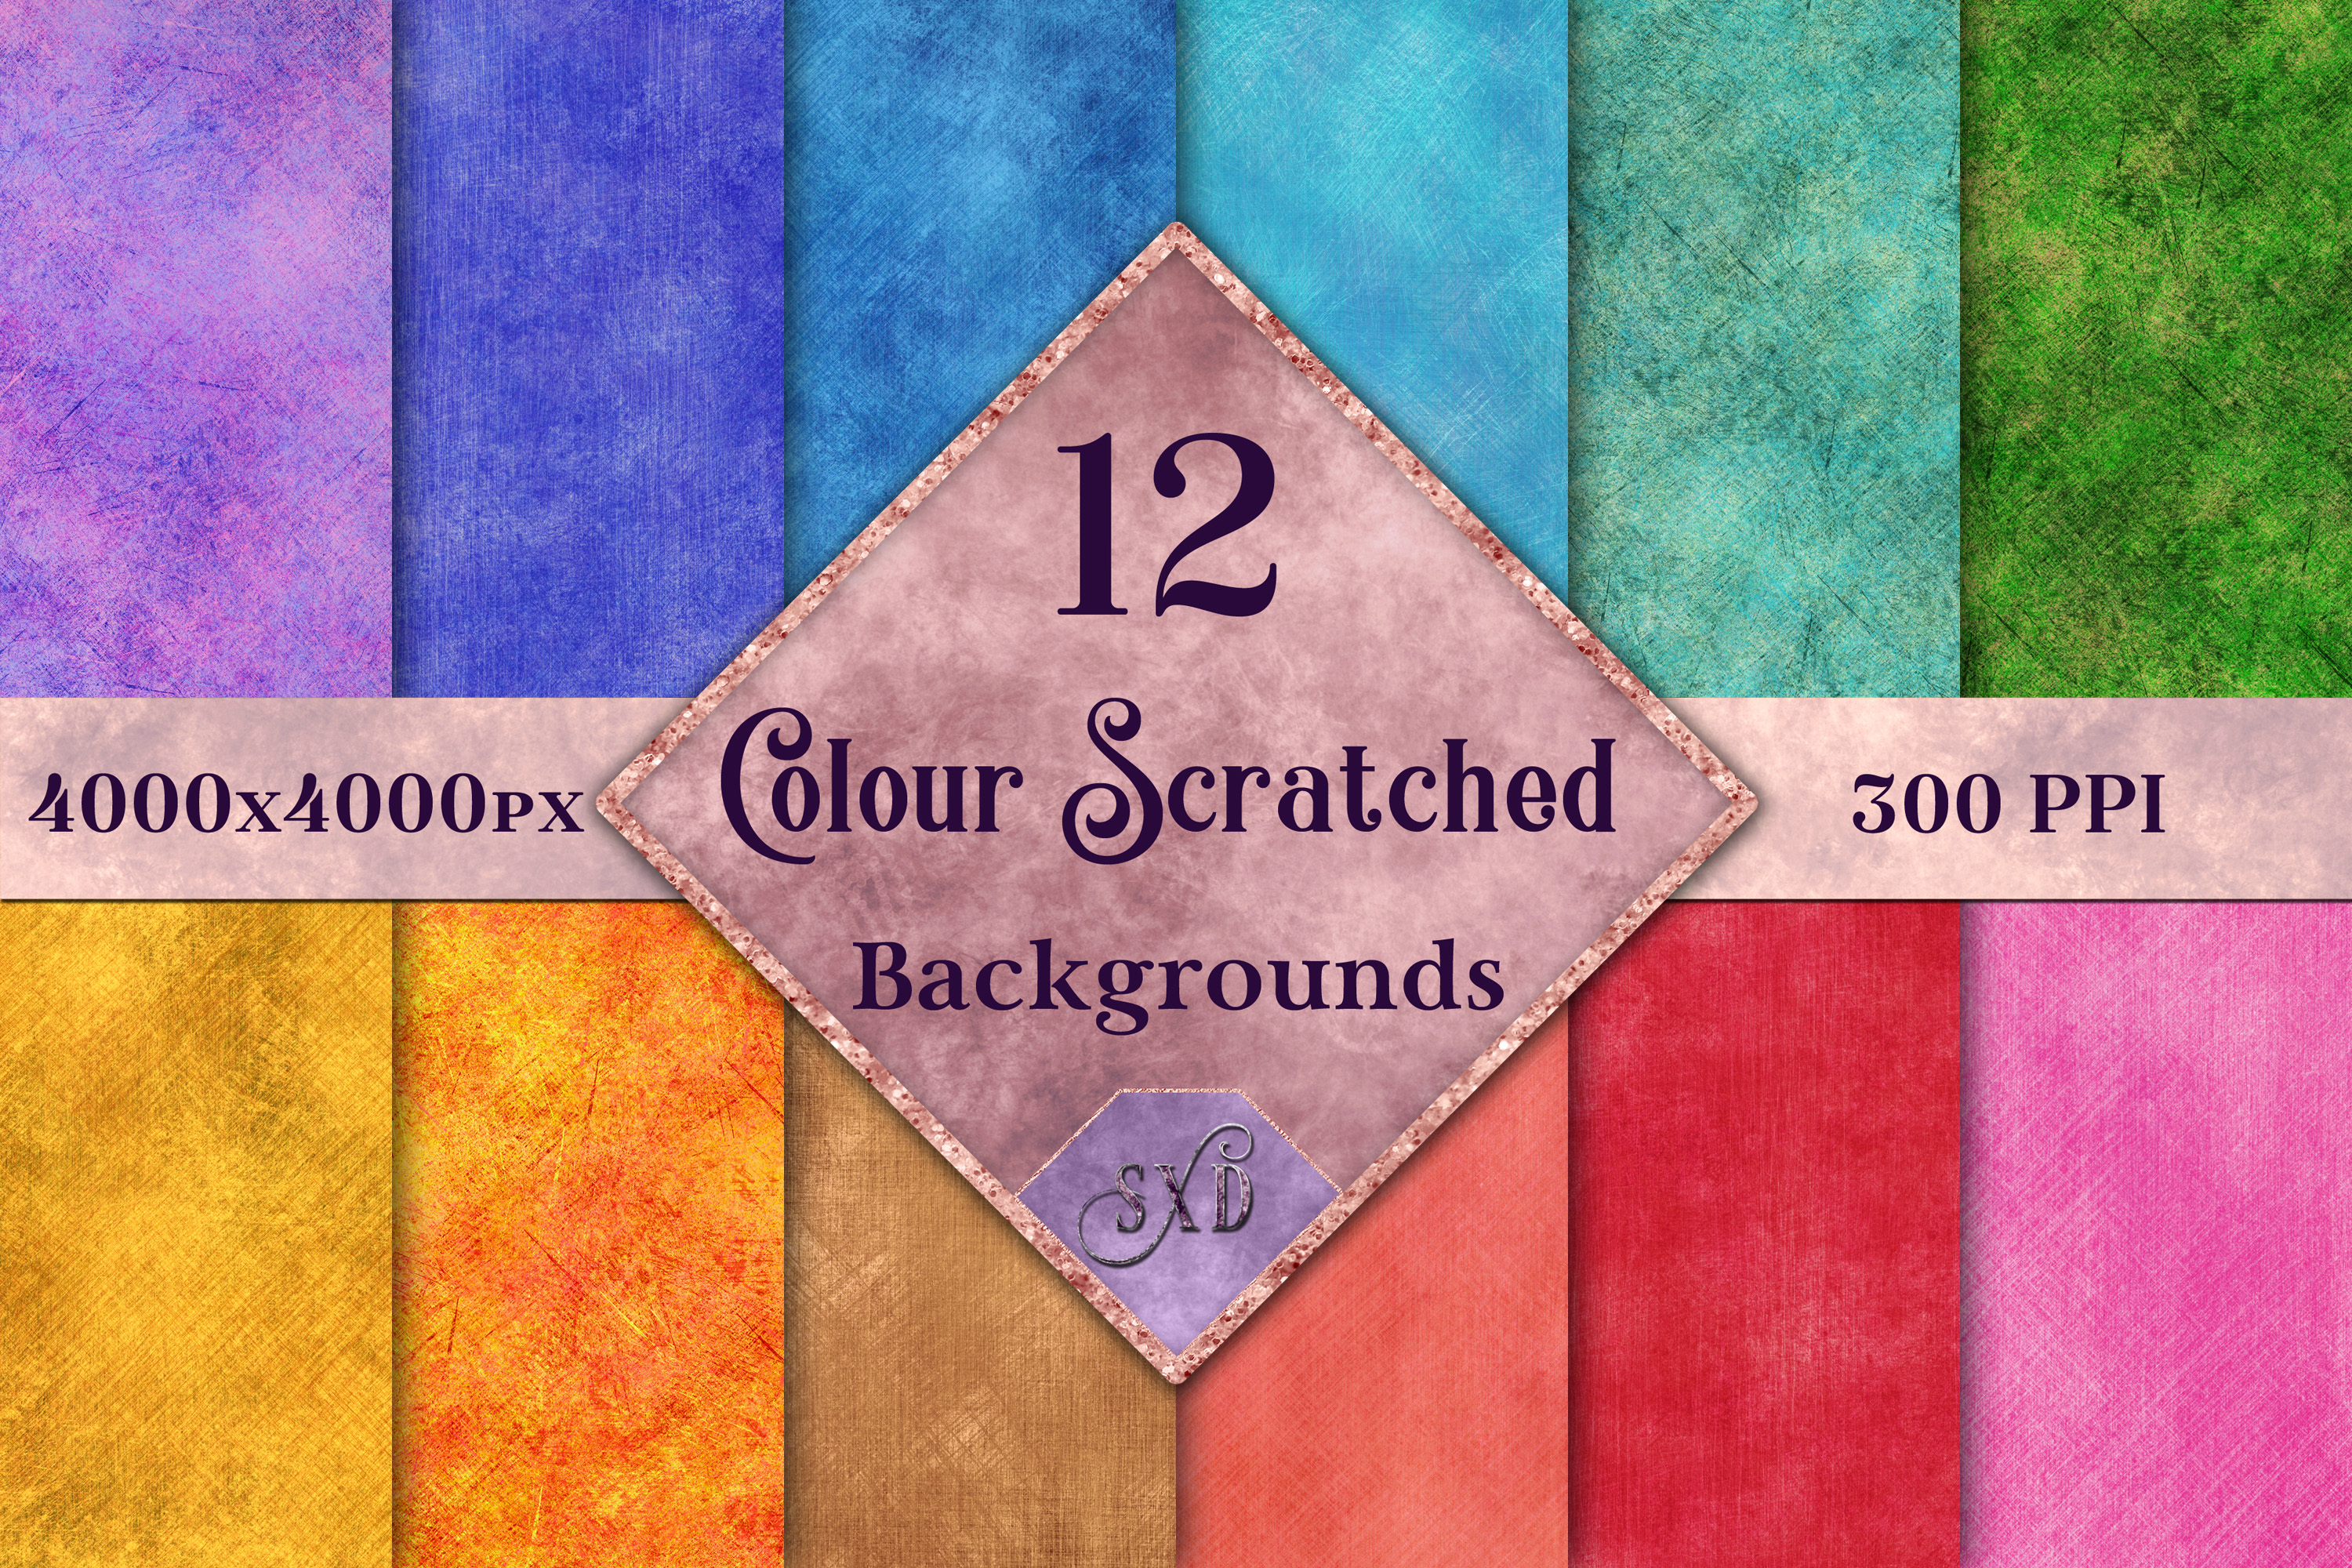 Colour Scratched Backgrounds - 12 Image Textures Set example image 1